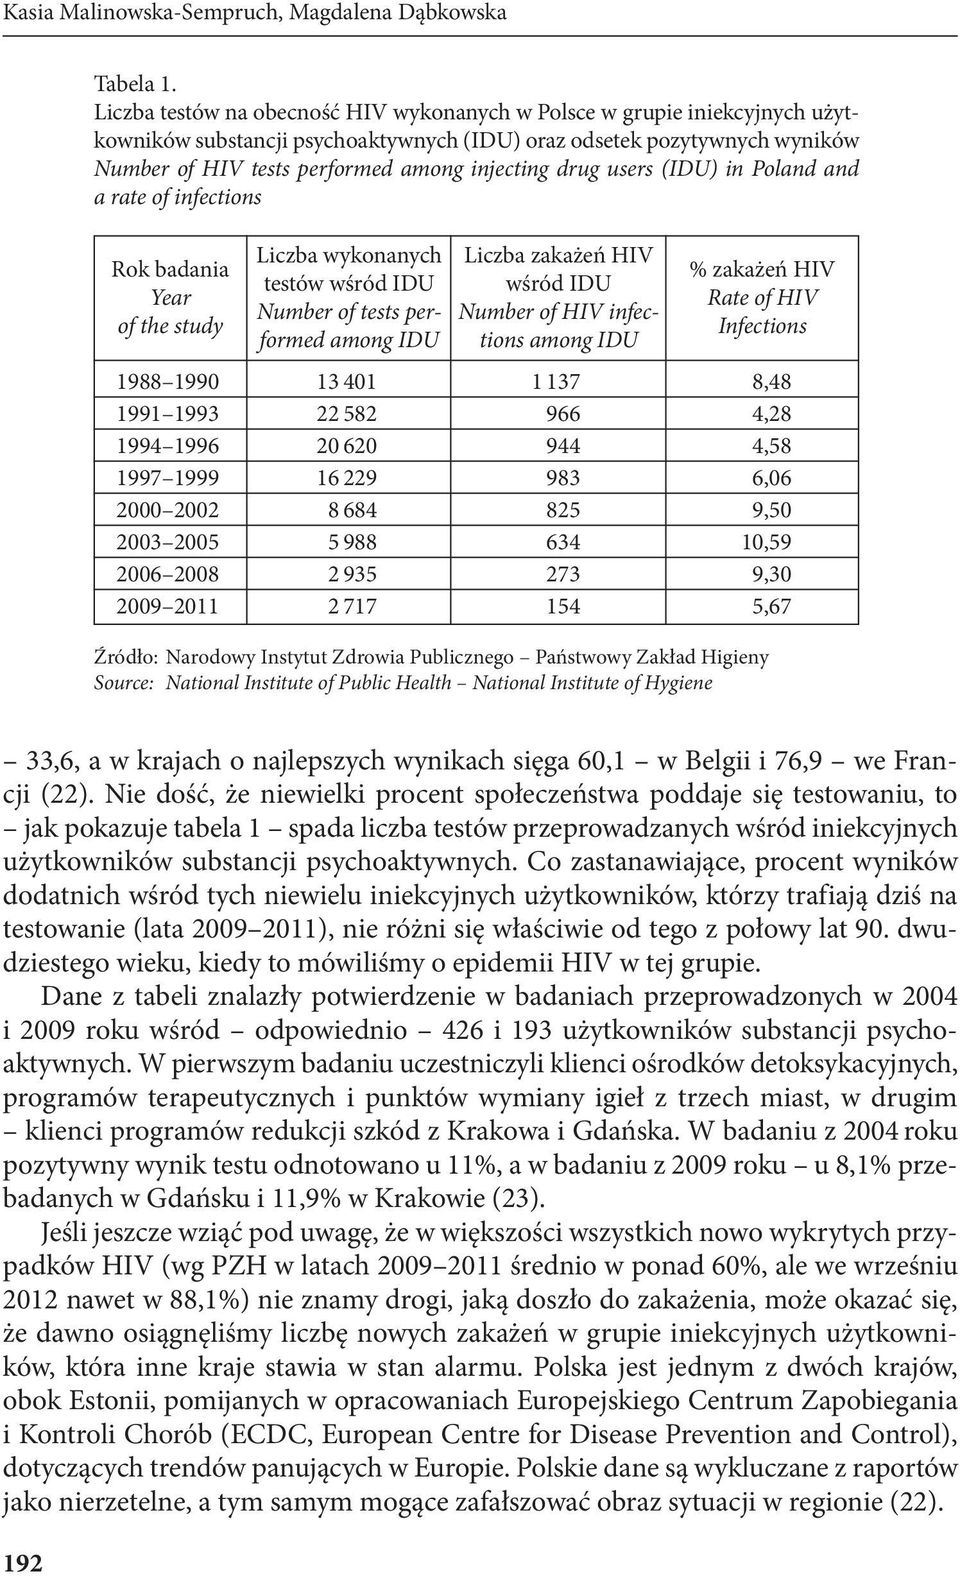 drug users (IDU) in Poland and a rate of infections Rok badania Year of the study Liczba wykonanych testów wśród IDU Number of tests performed among IDU Liczba zakażeń HIV wśród IDU Number of HIV